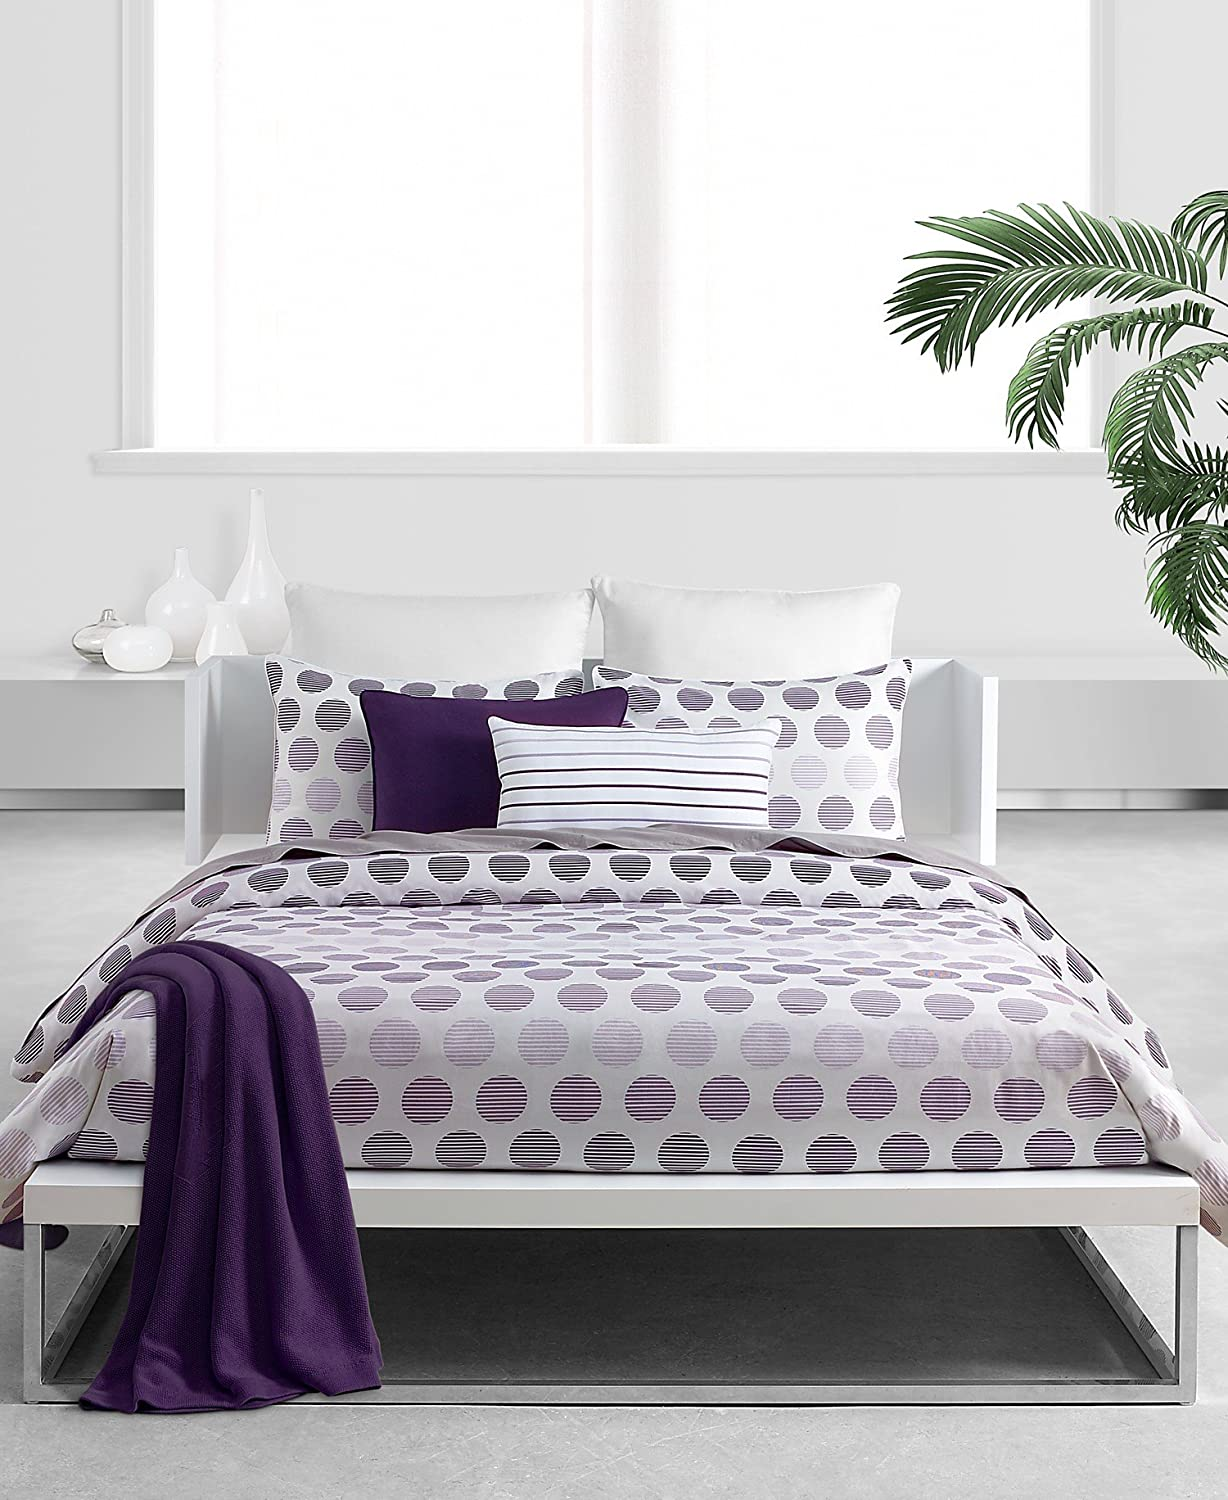 and style washed this amazing duvet bluecollarprep gray cotton vapor collection solid home we versatile with bedding comfy cover lacoste new got menswear blogger